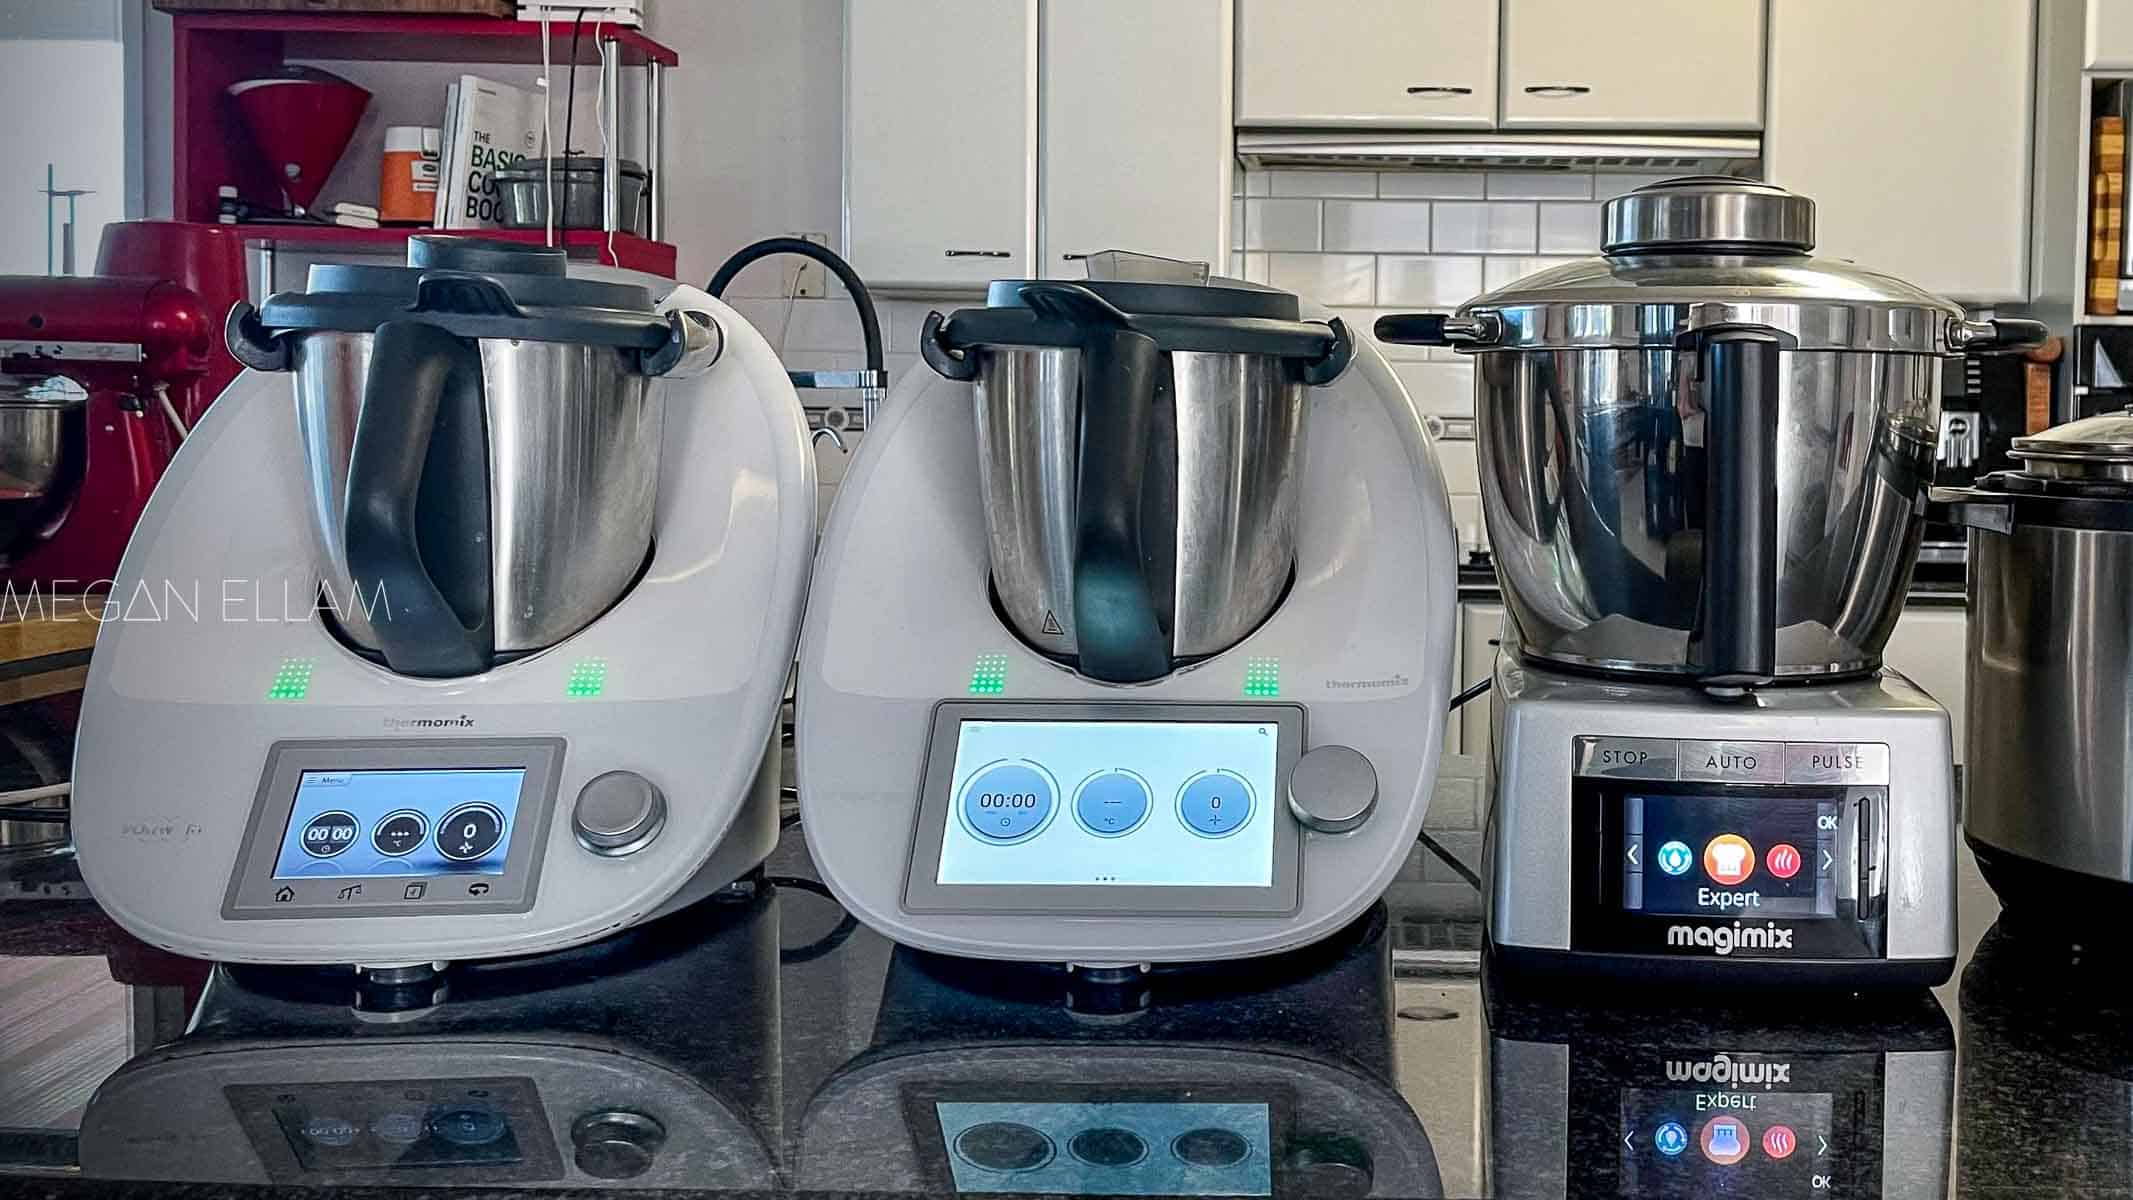 3 thermal appliances on a kitchen bench.